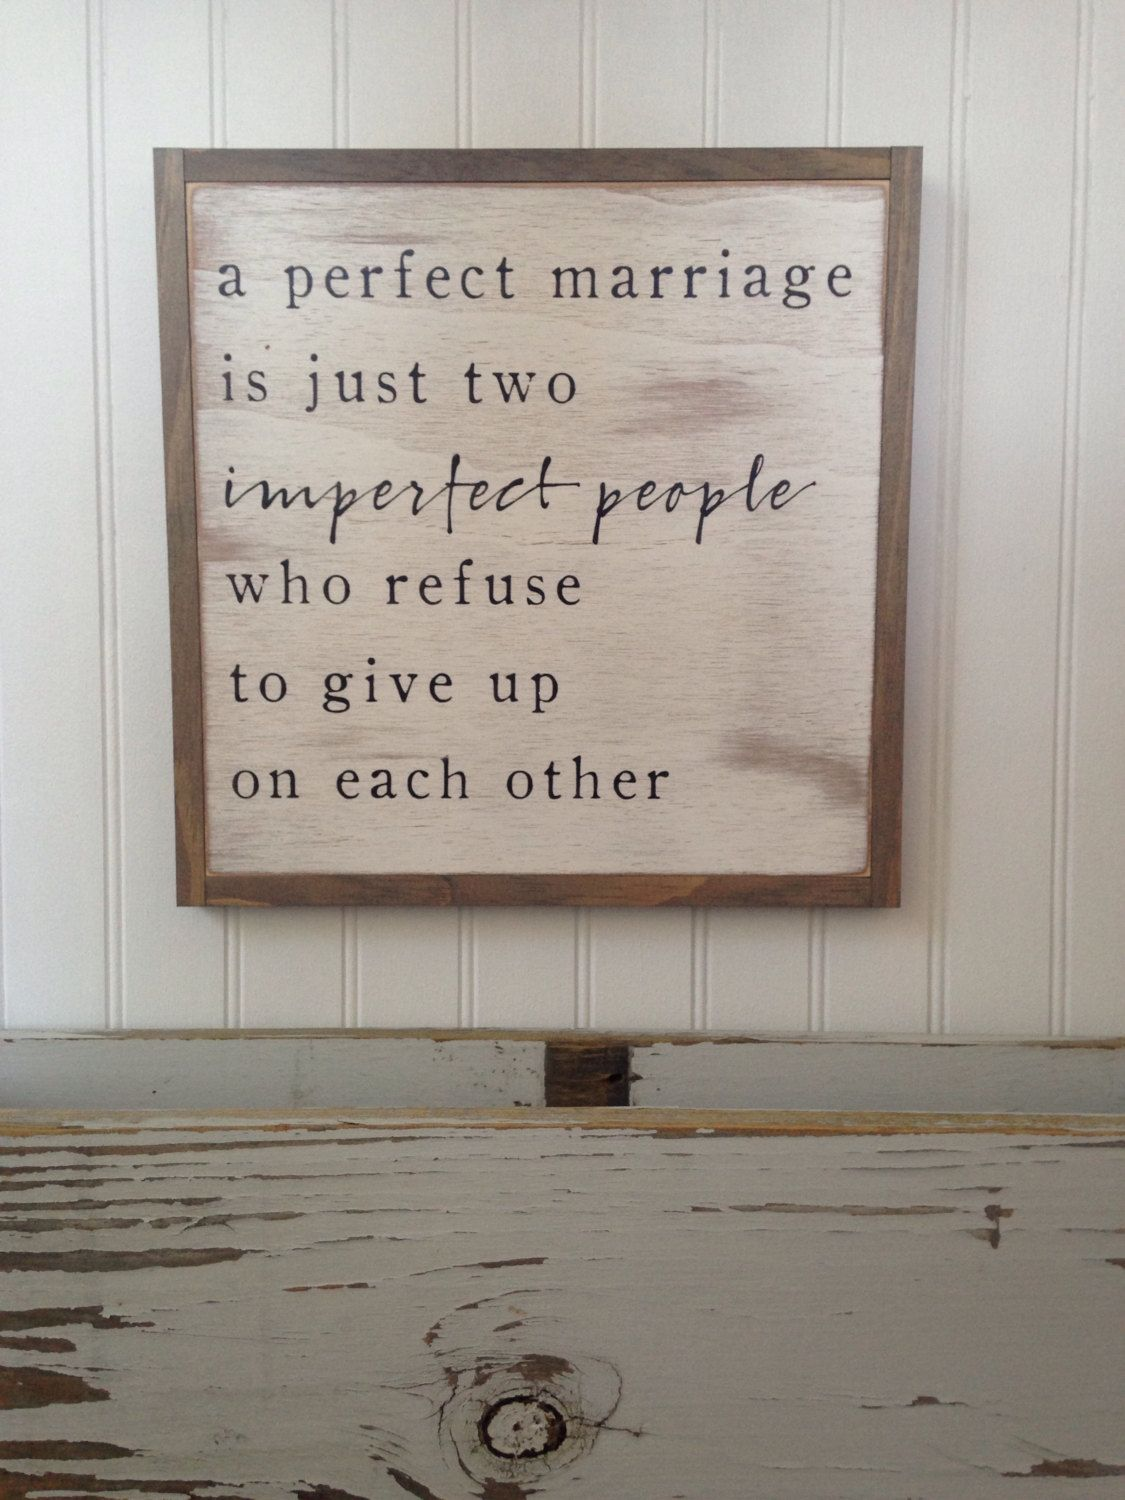 Bridal shower or wedding gift idea- rustic sign up with love quote {Courtesy of Etsy}